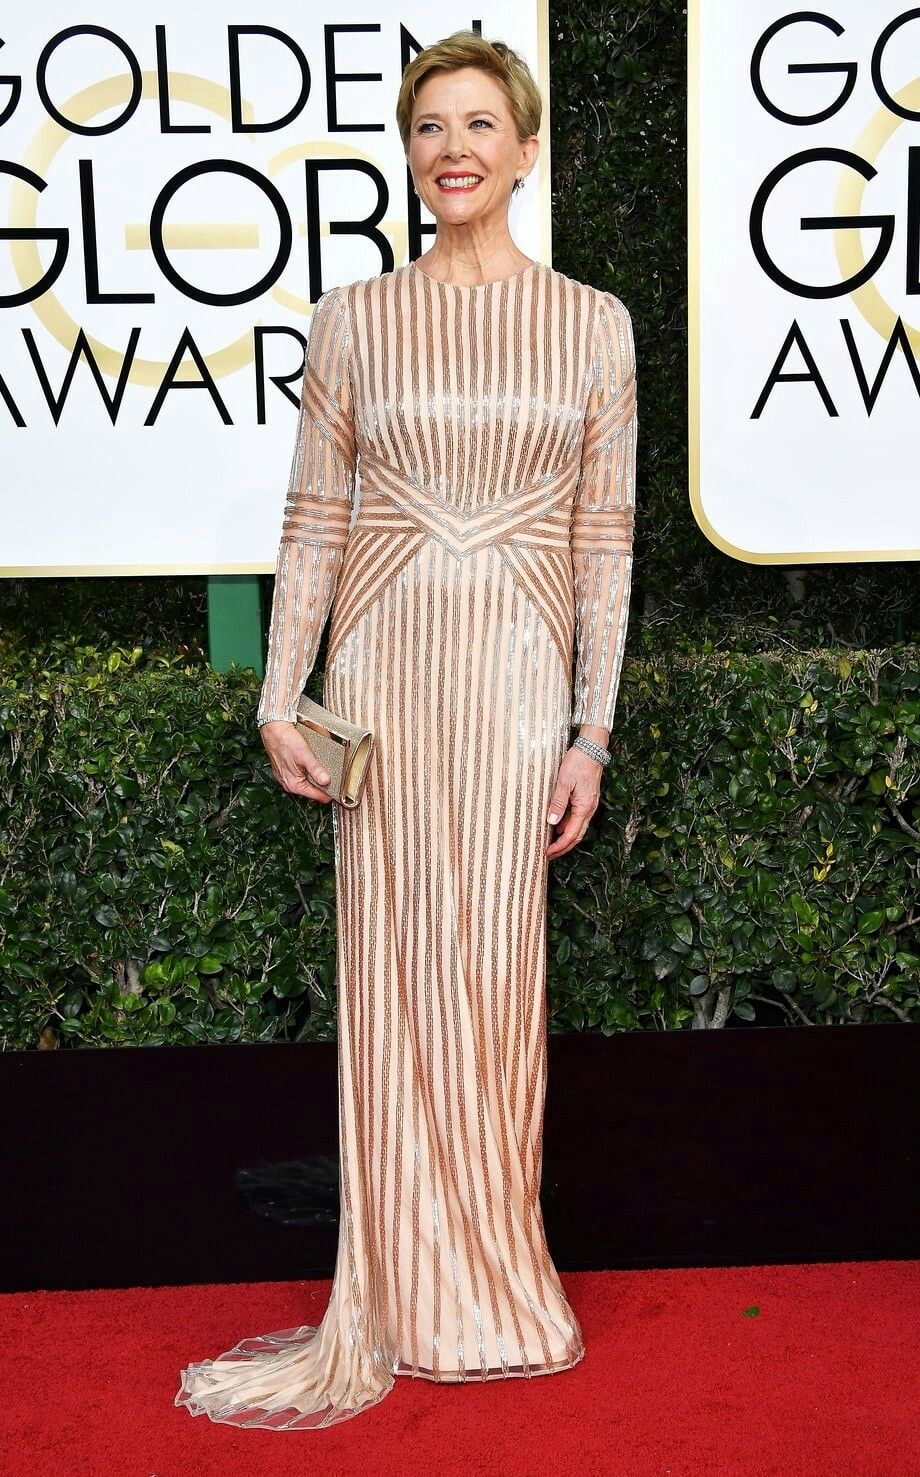 Annette Bening attends the 74th Annual Golden Globe Awards